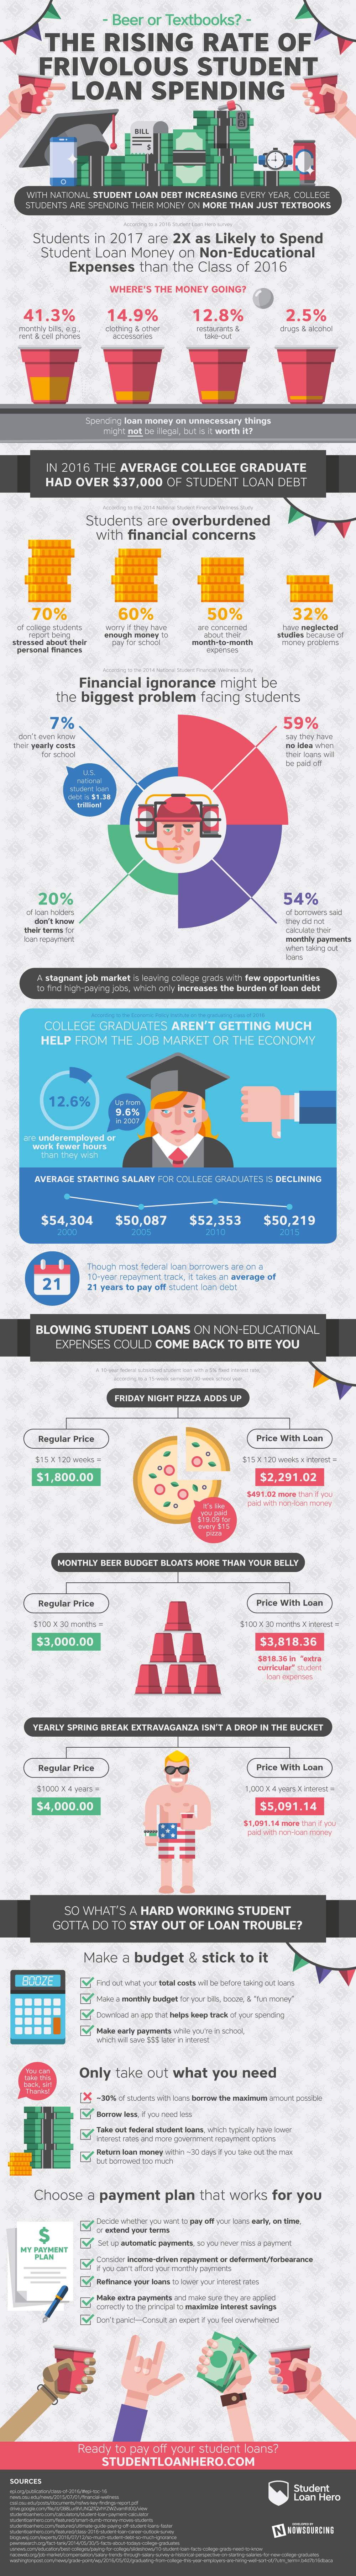 Beer Or Textbooks: The Rising Rate Of Frivolous Student Loan Spending